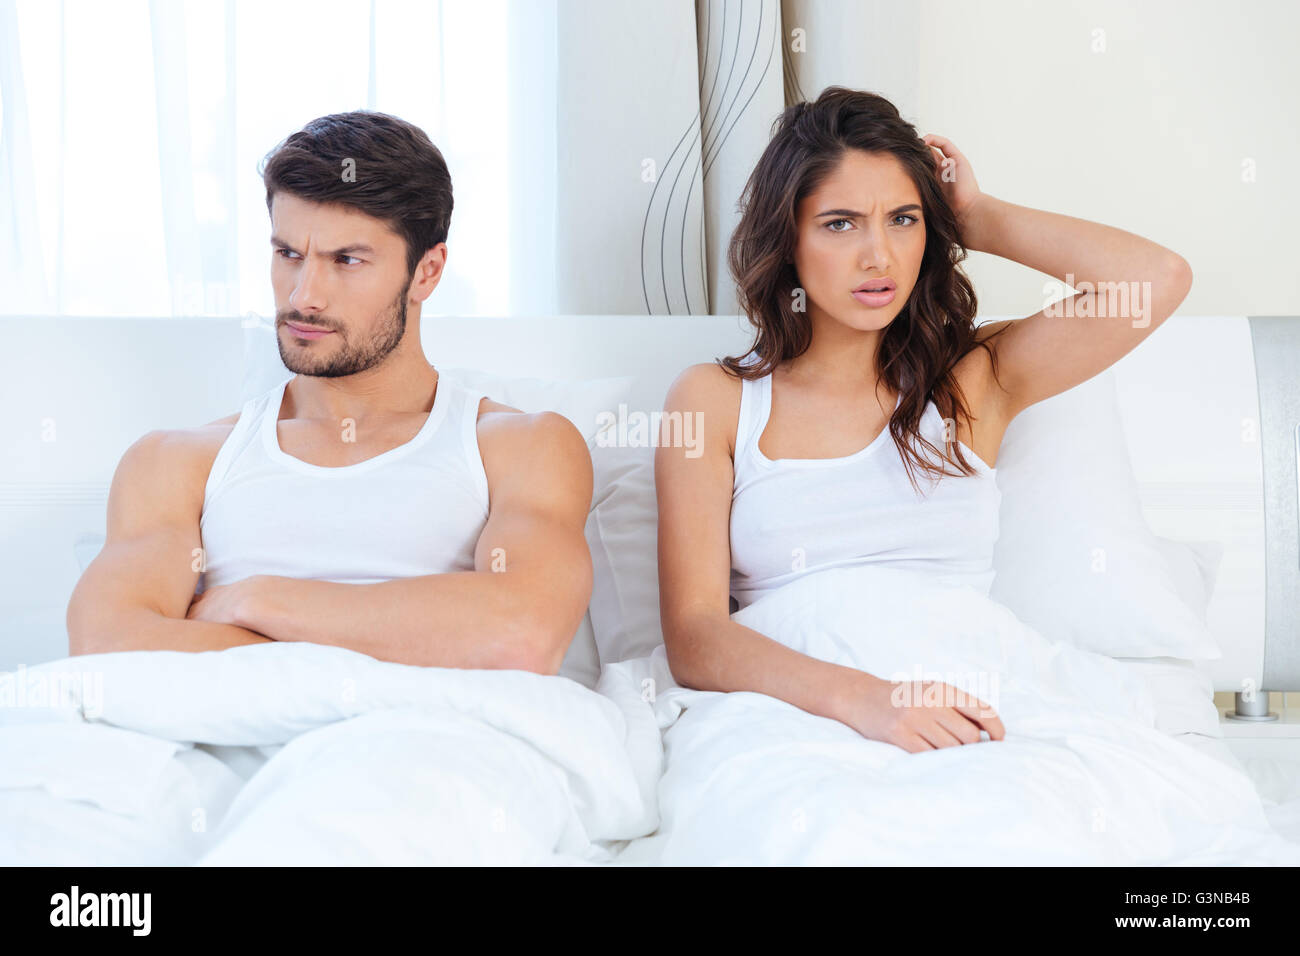 Unhappy separate couple lying in a bed at home - Stock Image